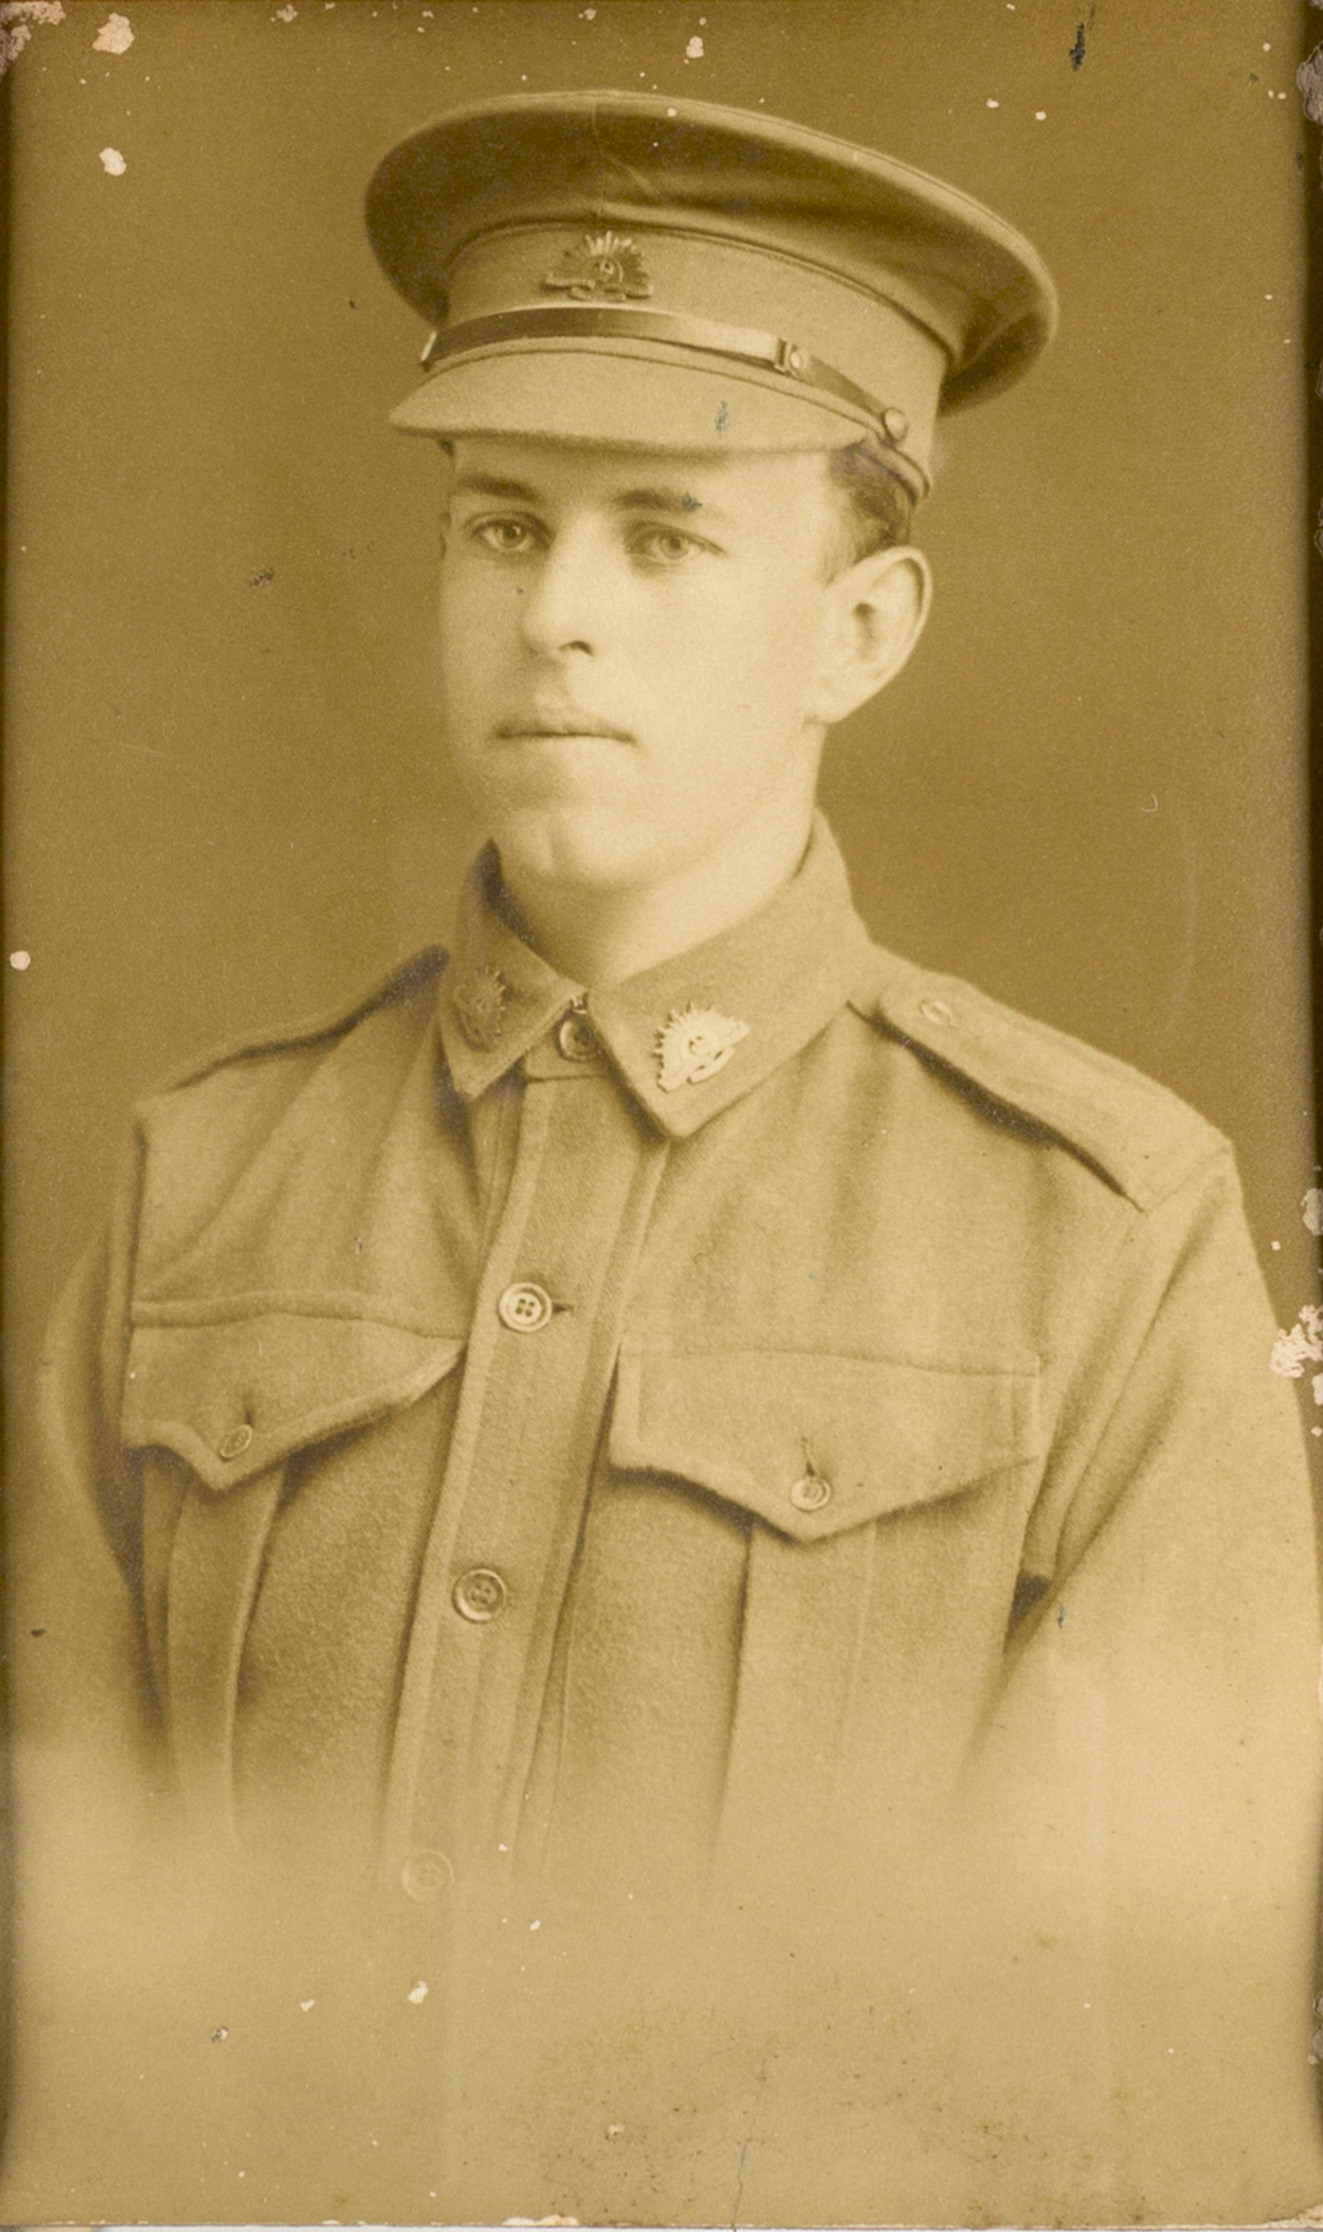 Sepia toned black and white photo of man in uniform.